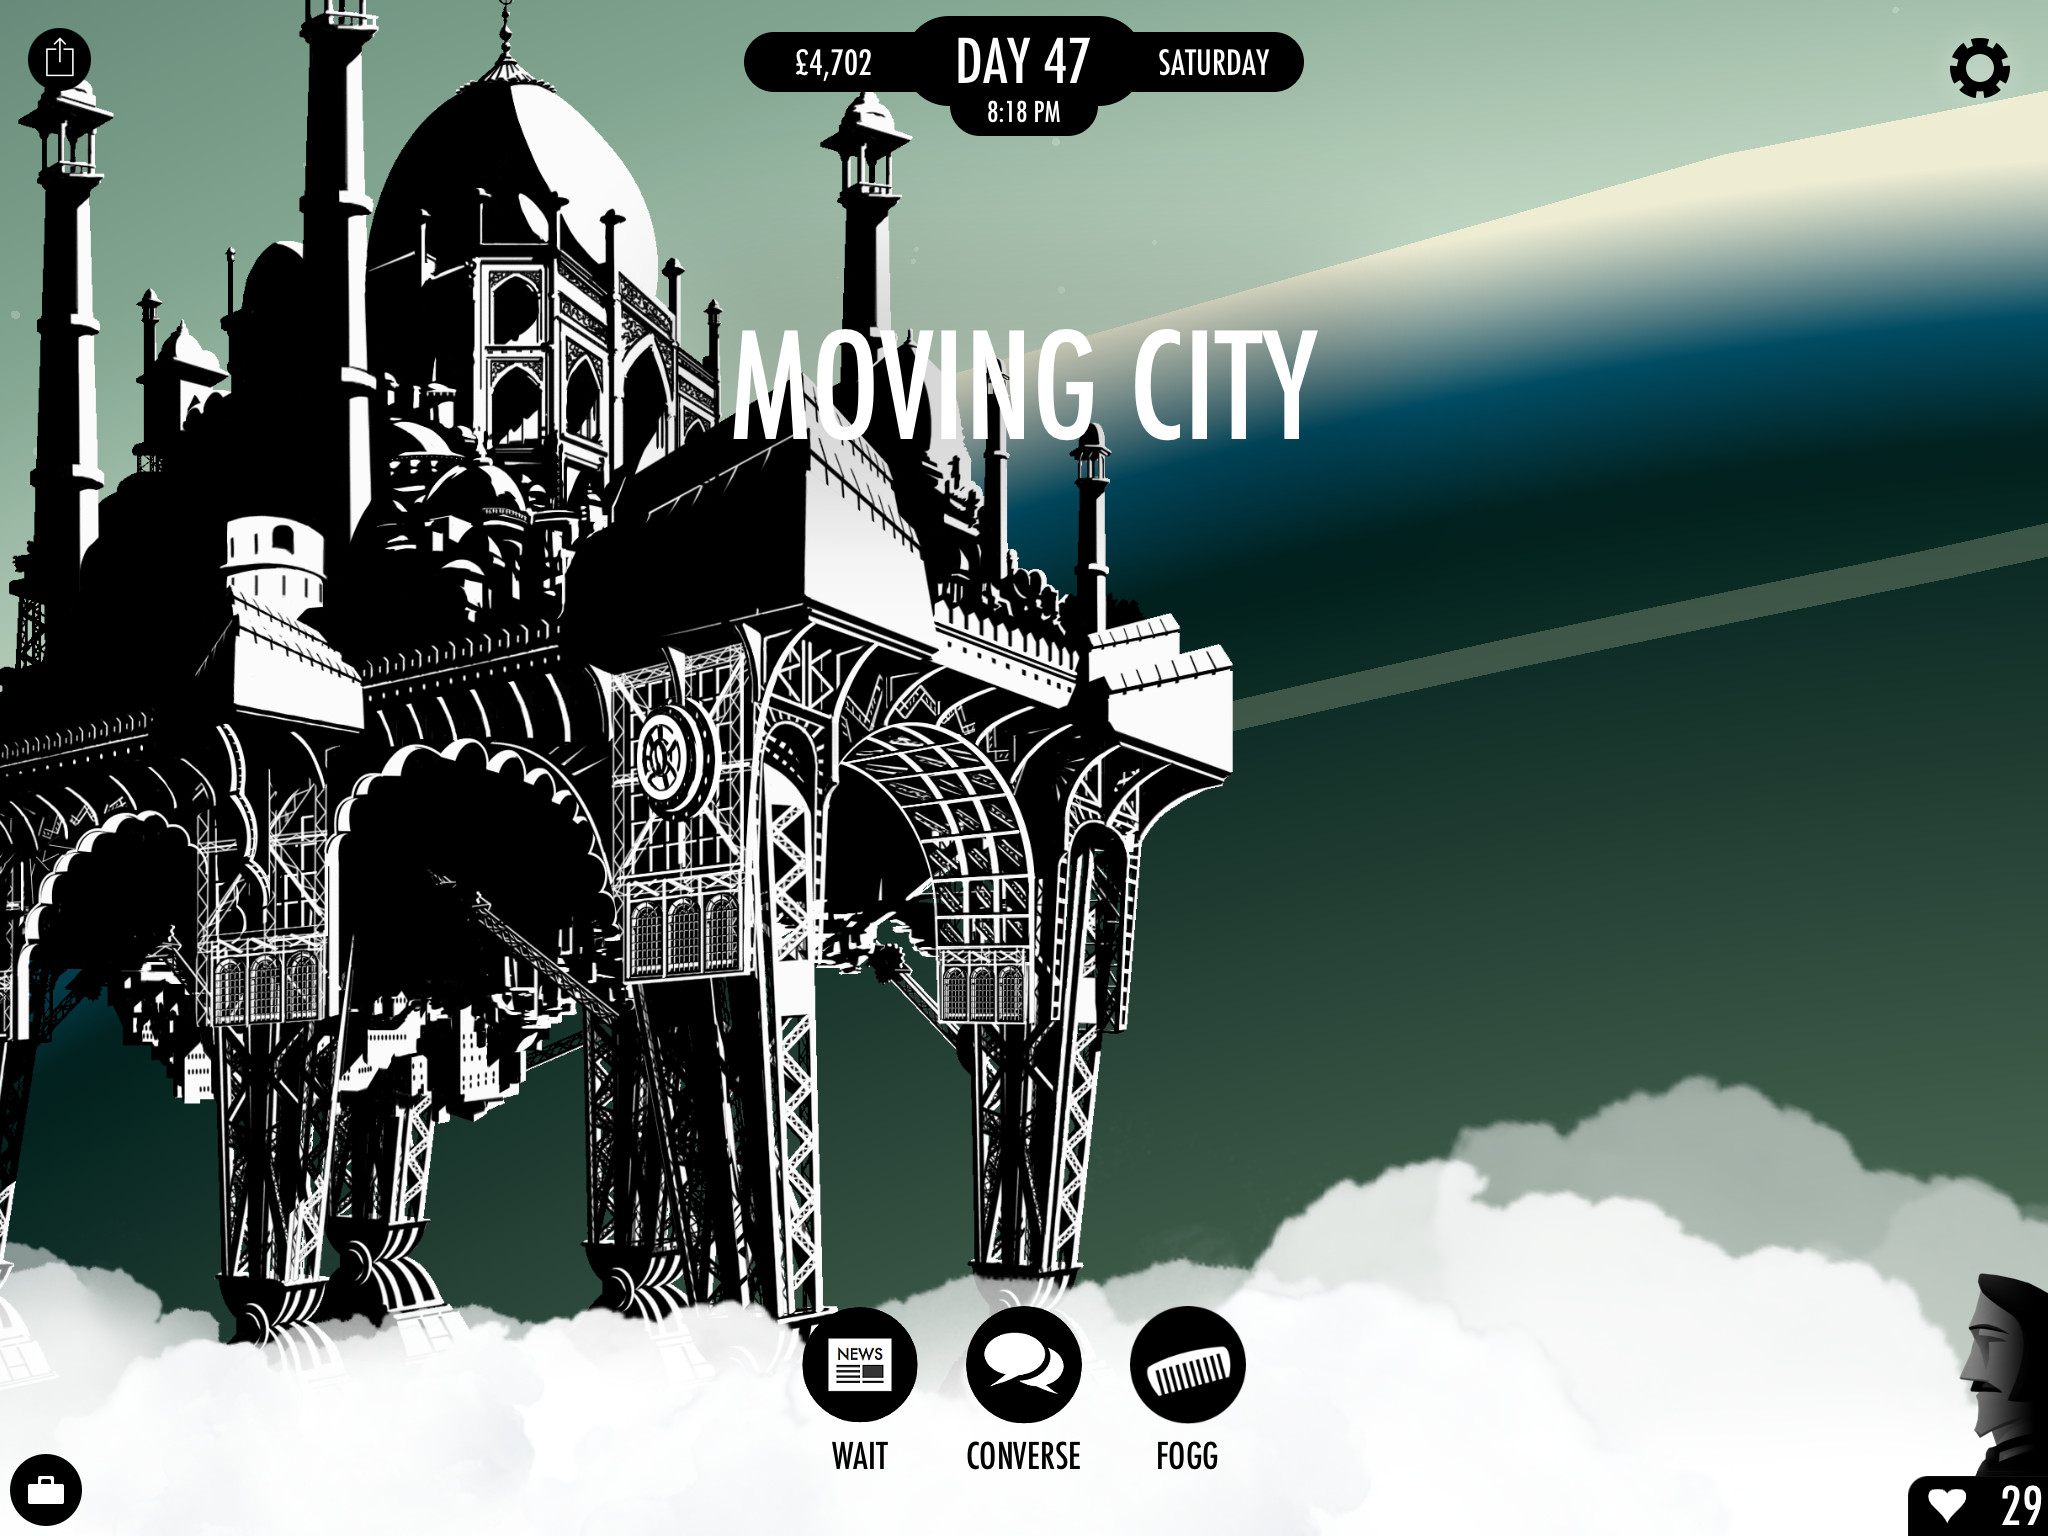 80 Days Moving City